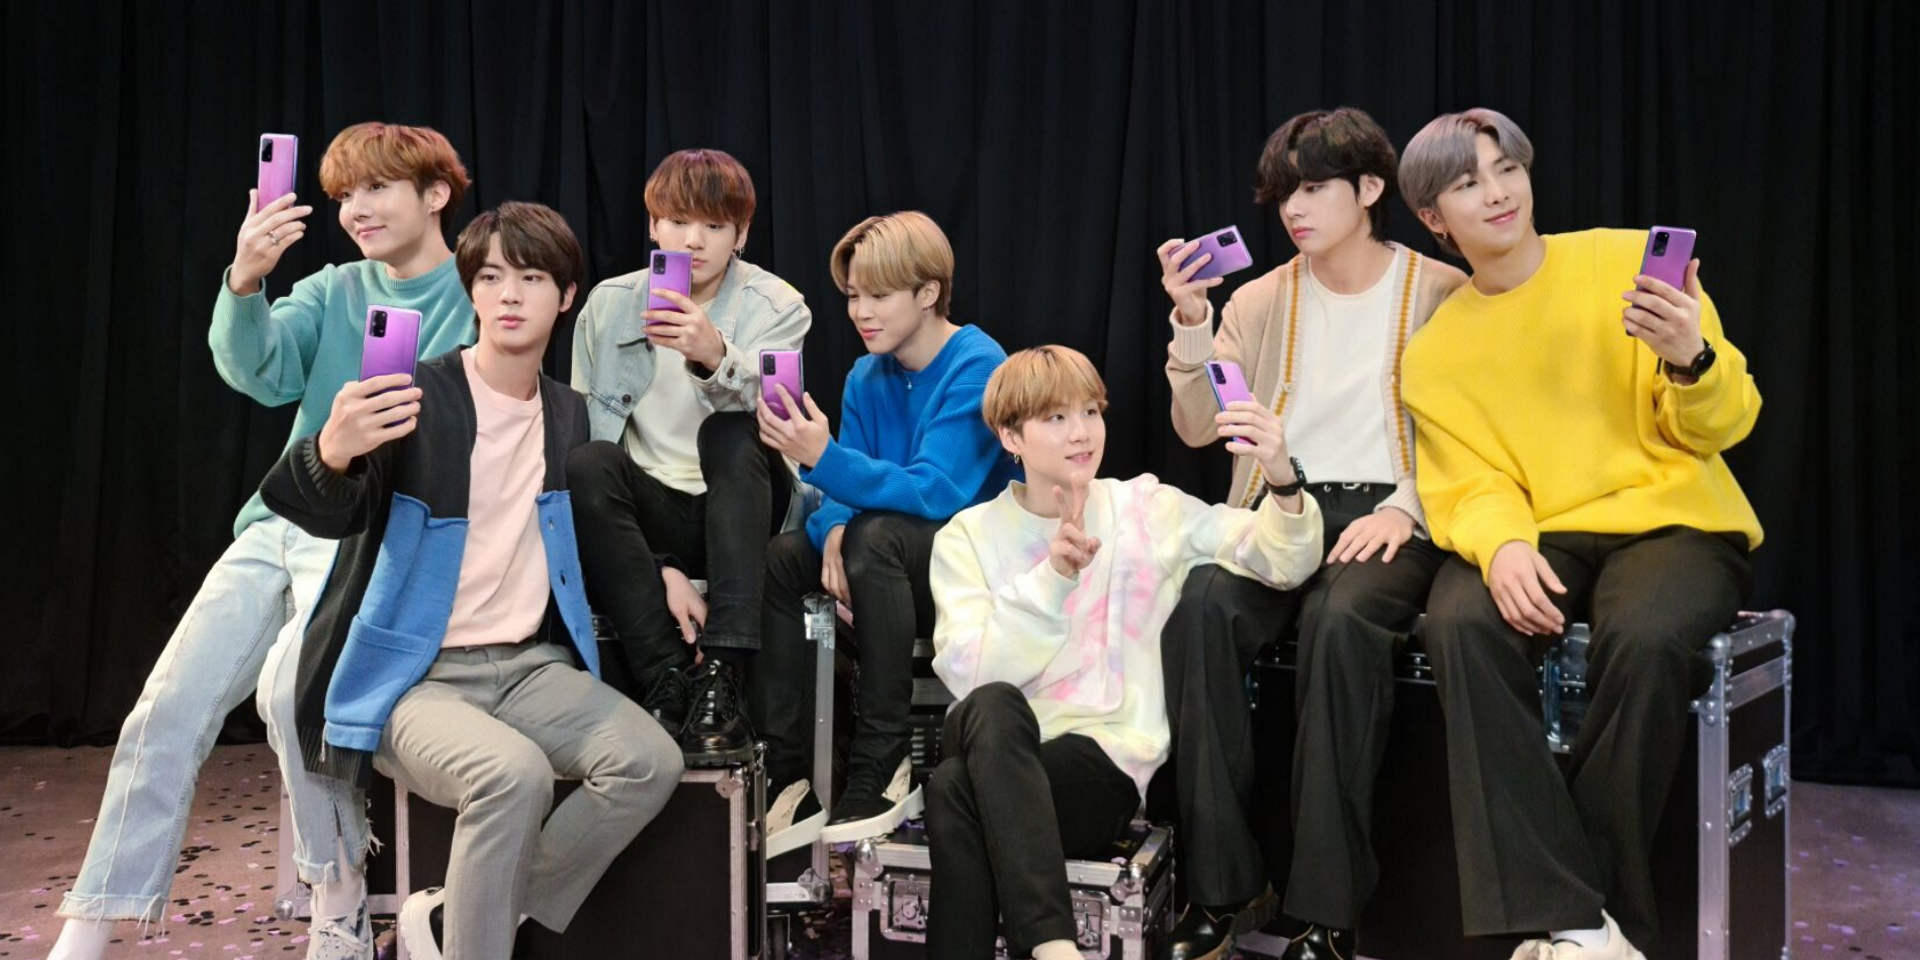 How the Internet is reacting to BTS' new purple phone